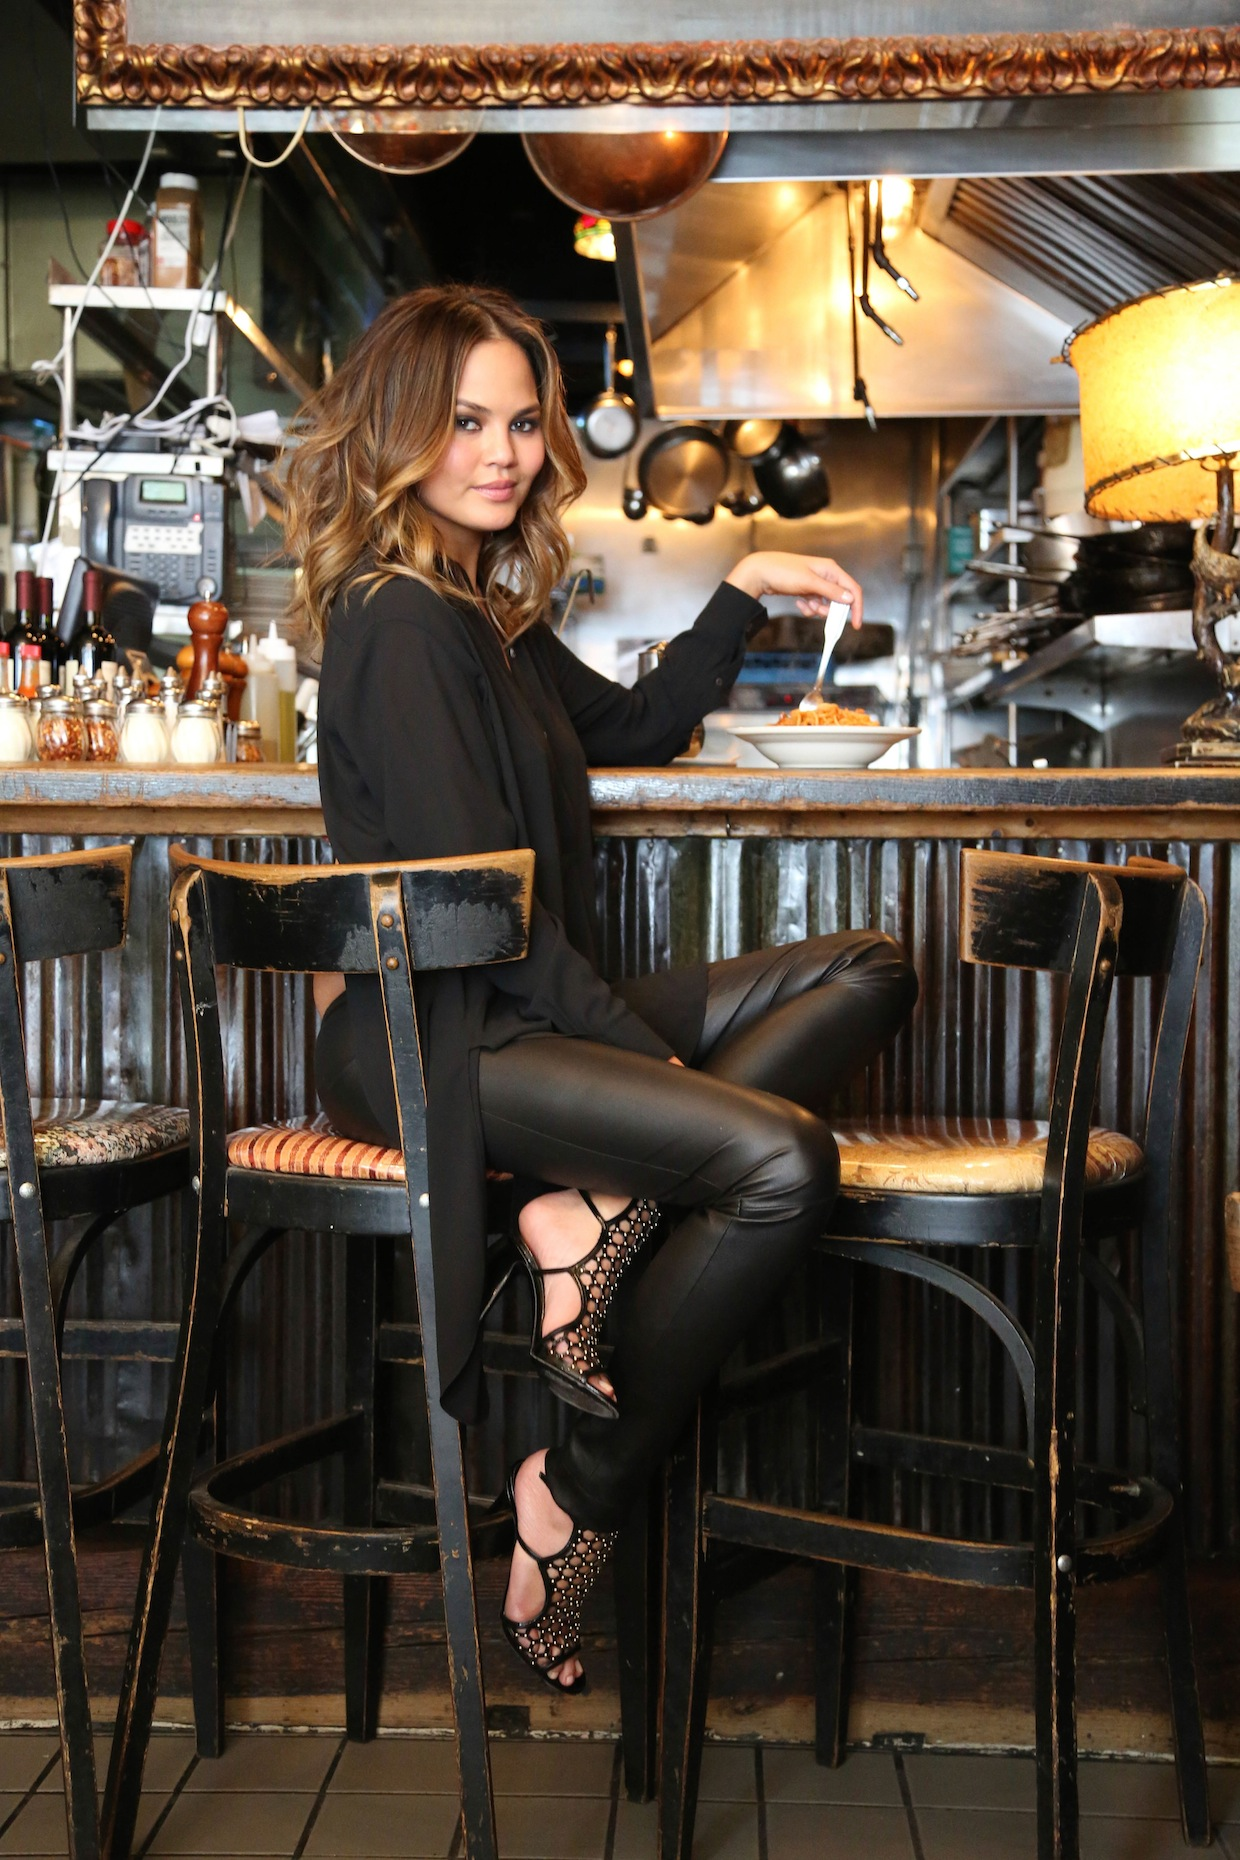 CHRISSY-TEIGEN-THENEWPOTATO-5